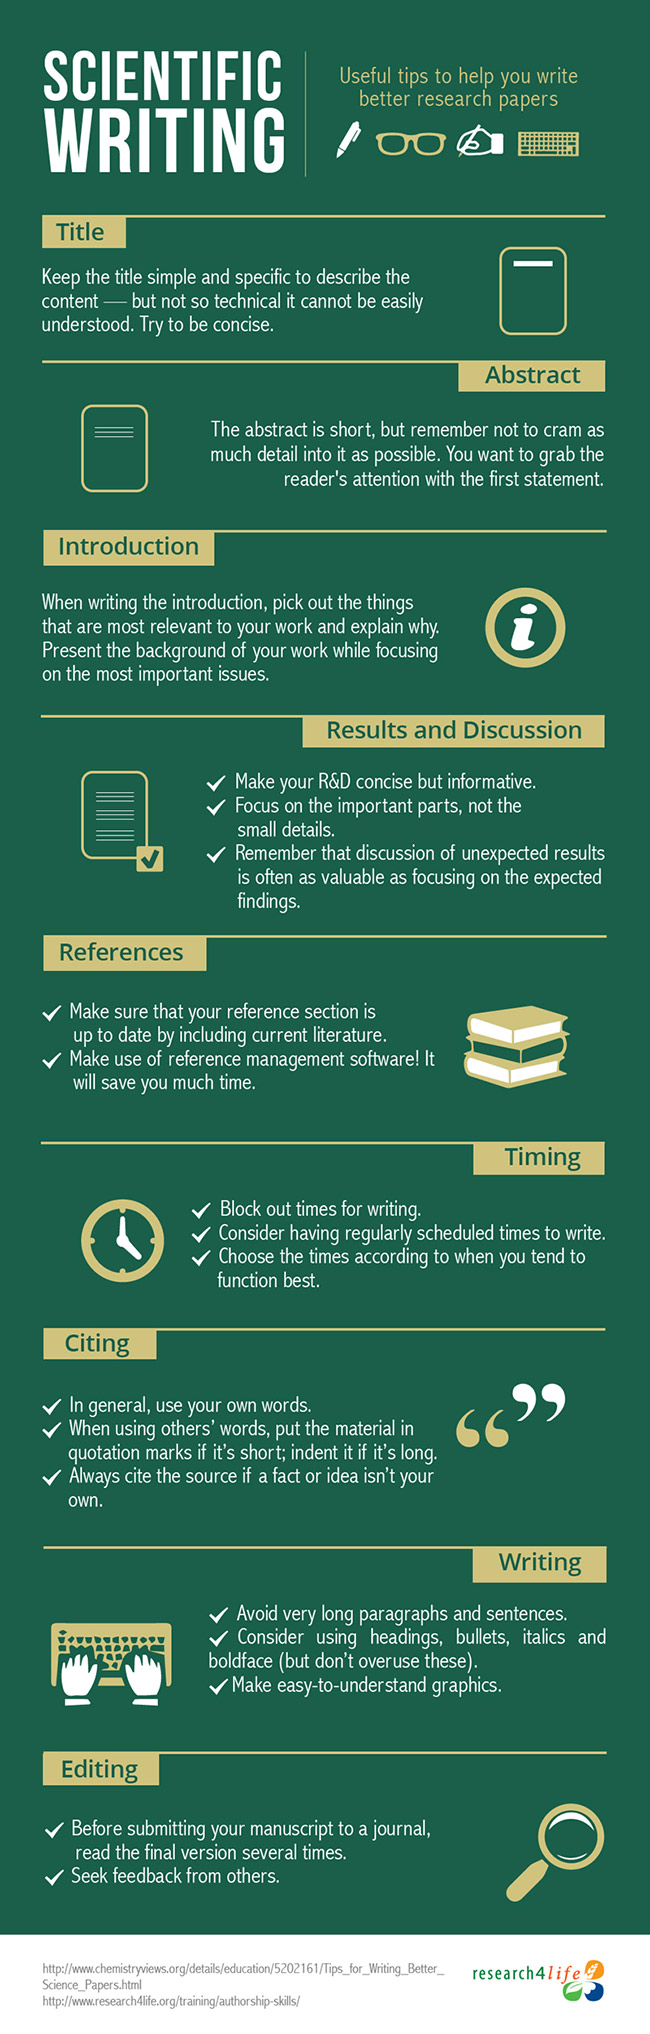 Sample Analytical Essay  Book Title In Essay also How Long Should A College Essay Be Infographic How To Write Better Science Papers Jacksonian Democracy Essay